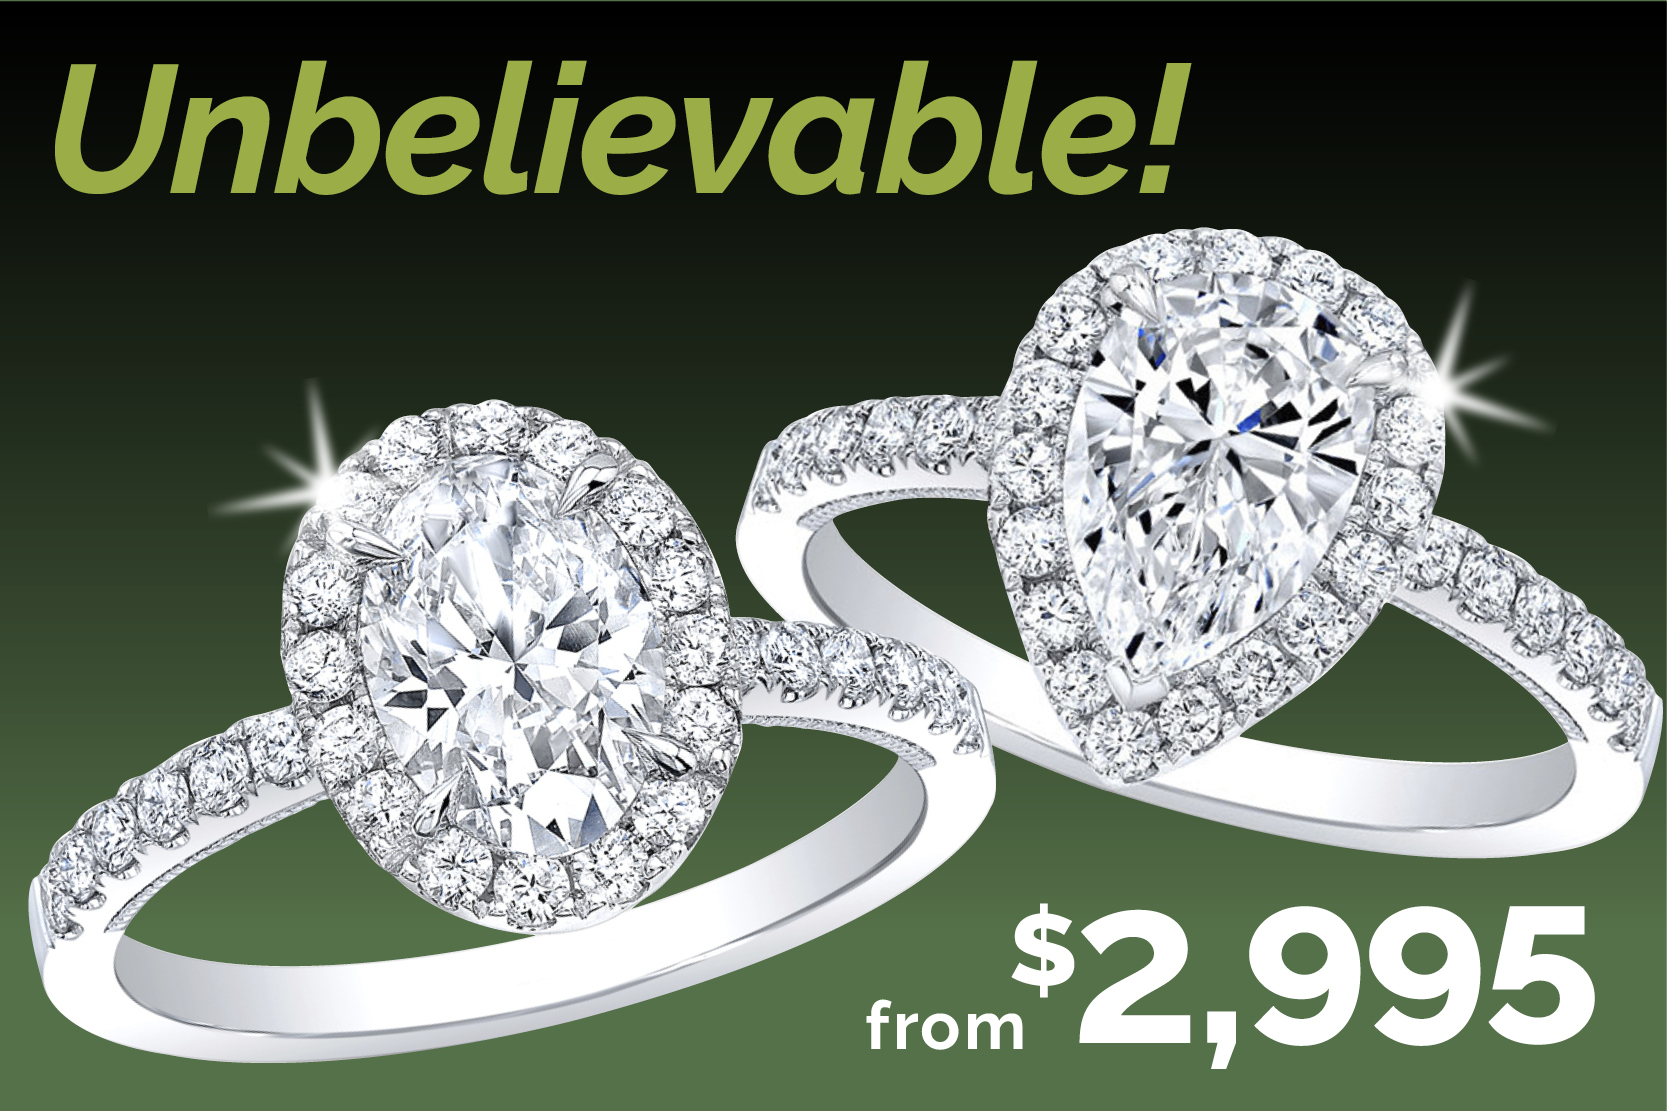 Unbelievable Pricing on Engagement Rings!